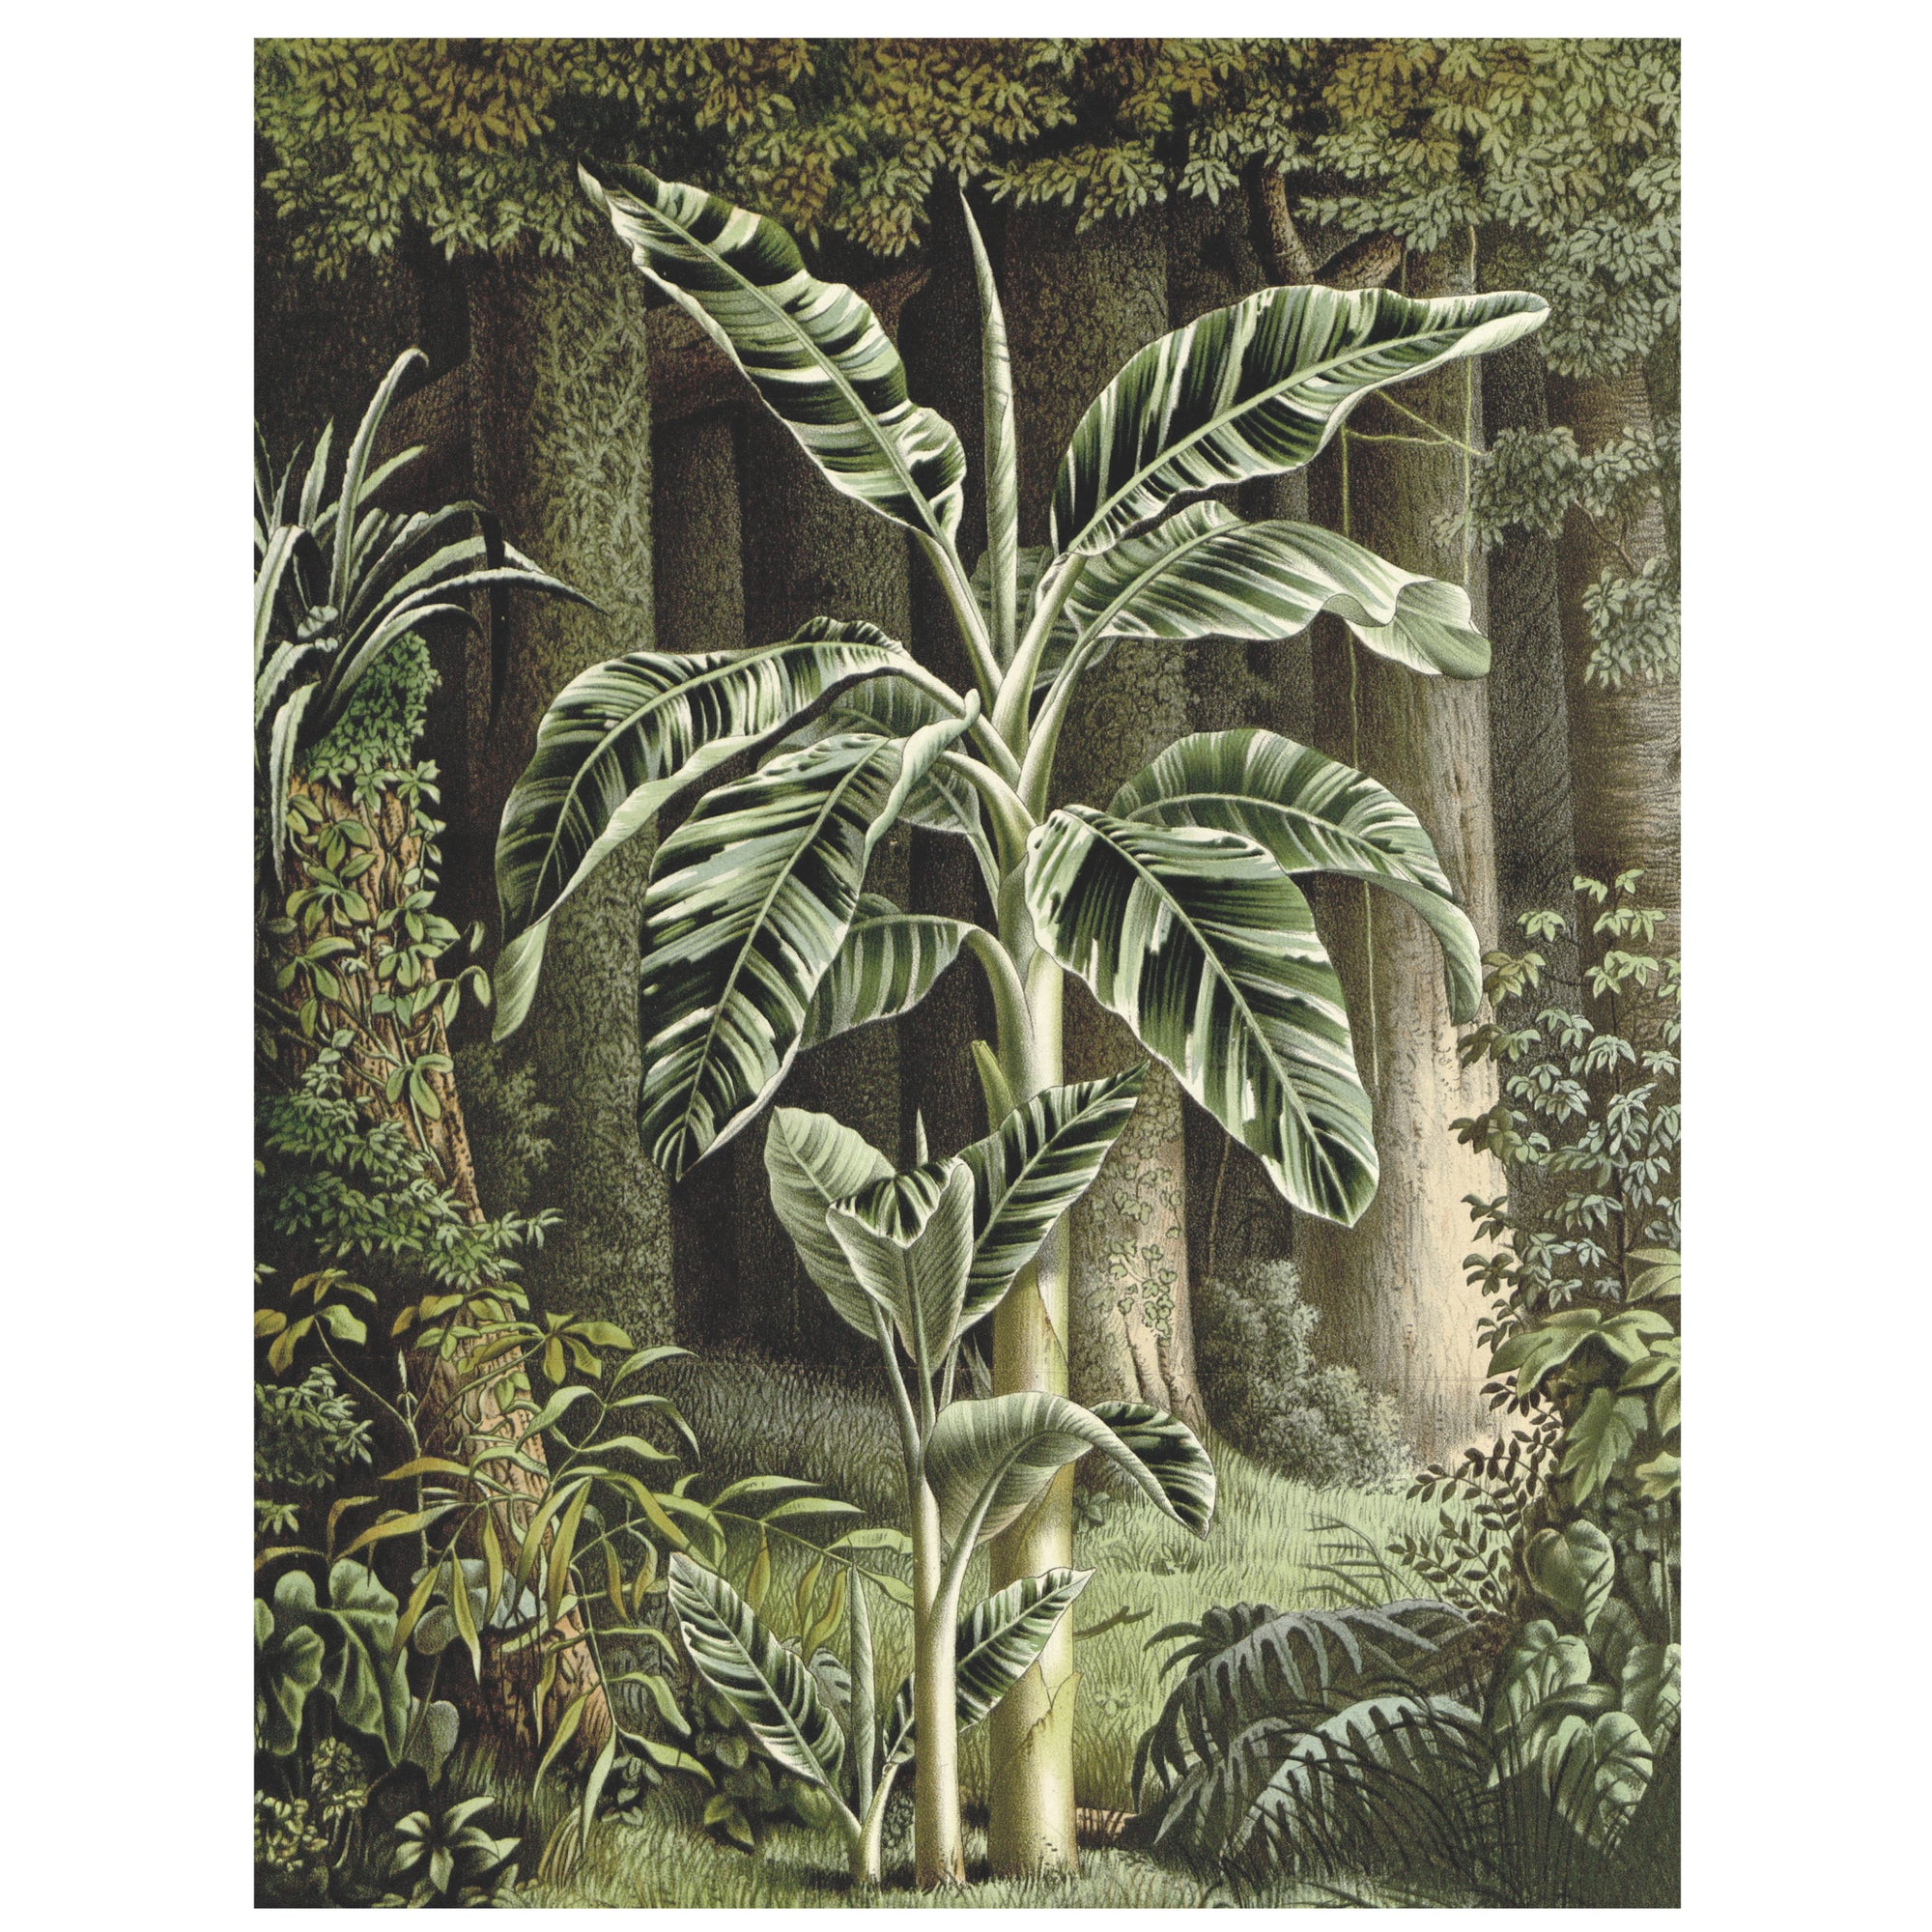 Musa Vittata jungle wall art